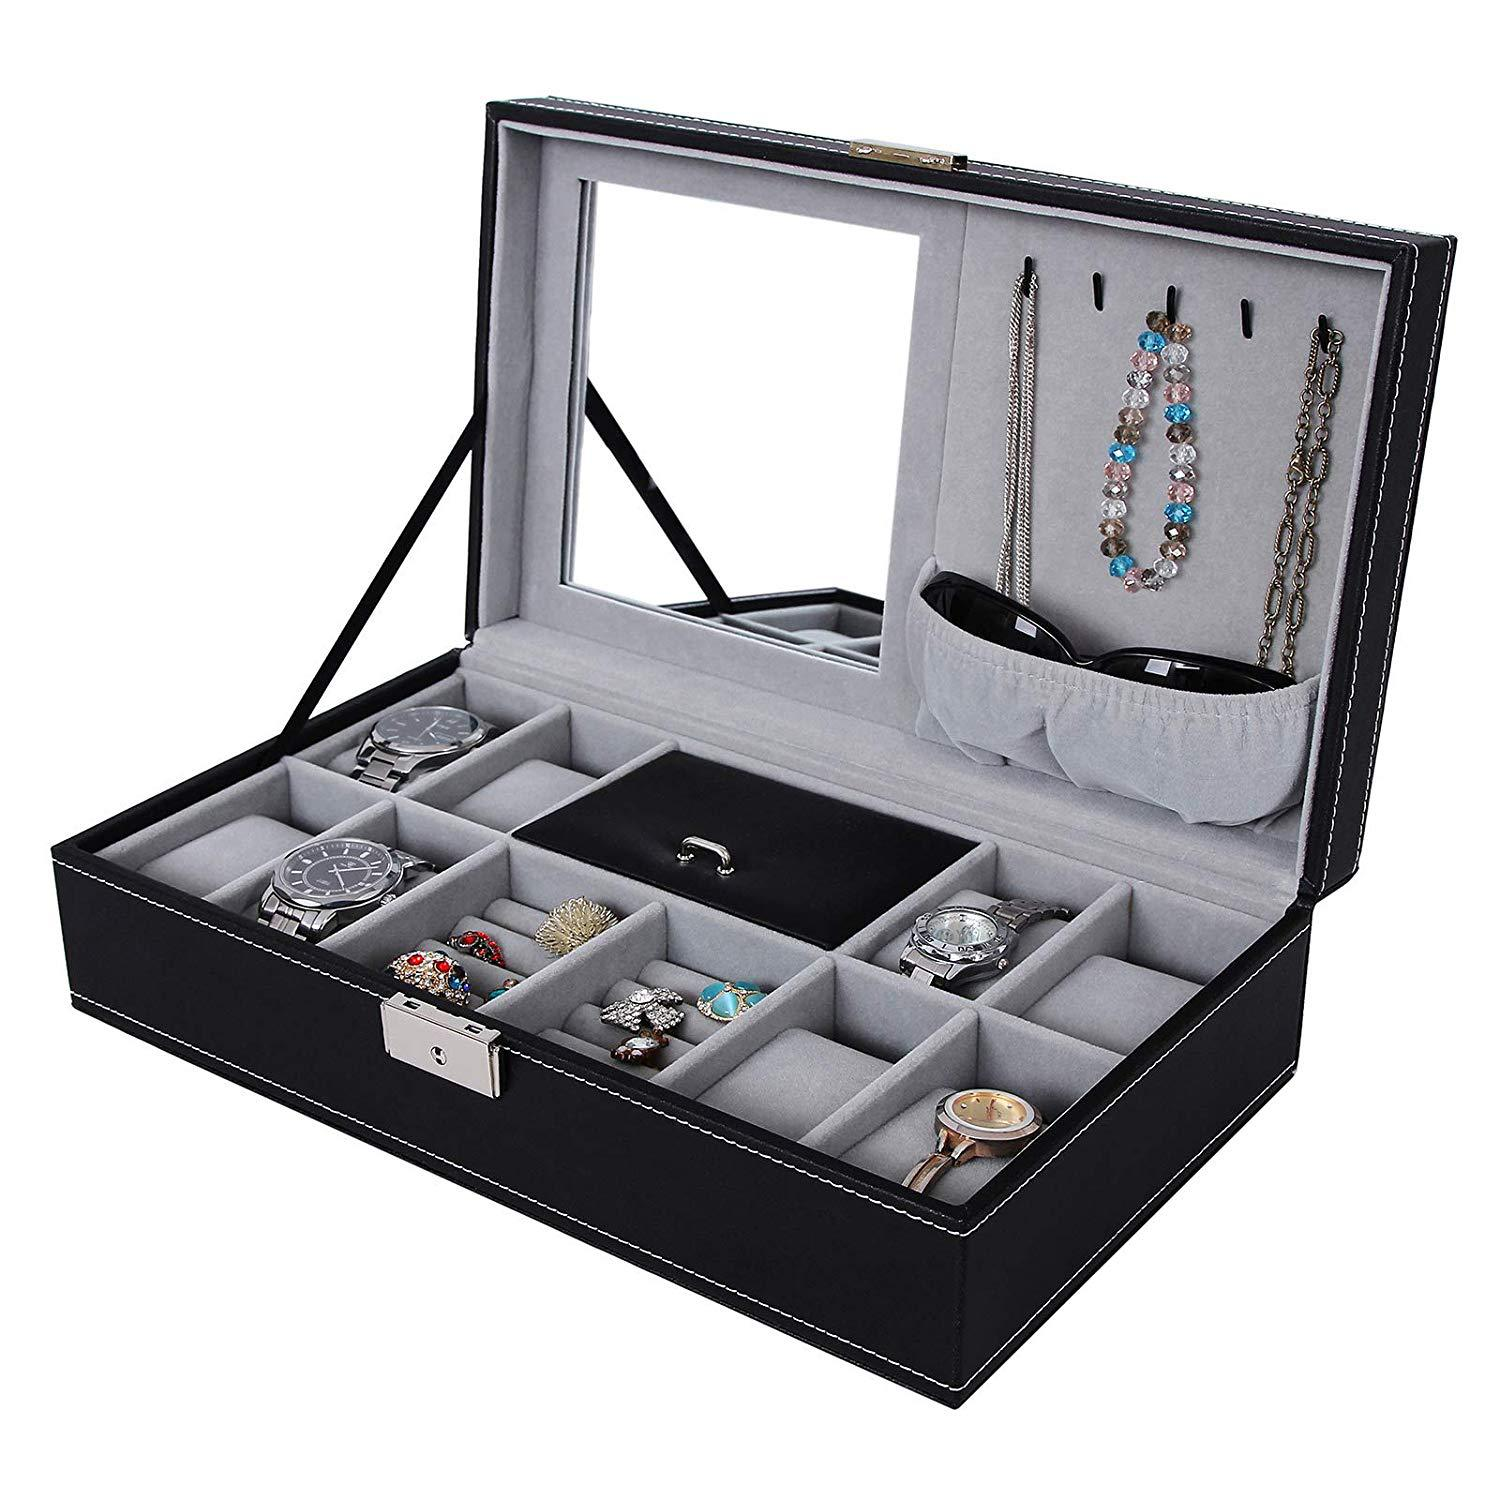 European Style PU Leather Watch Box Bracelets Storage Organizing Jewlery Box Multi-part Large-Volume Accessories Display Box